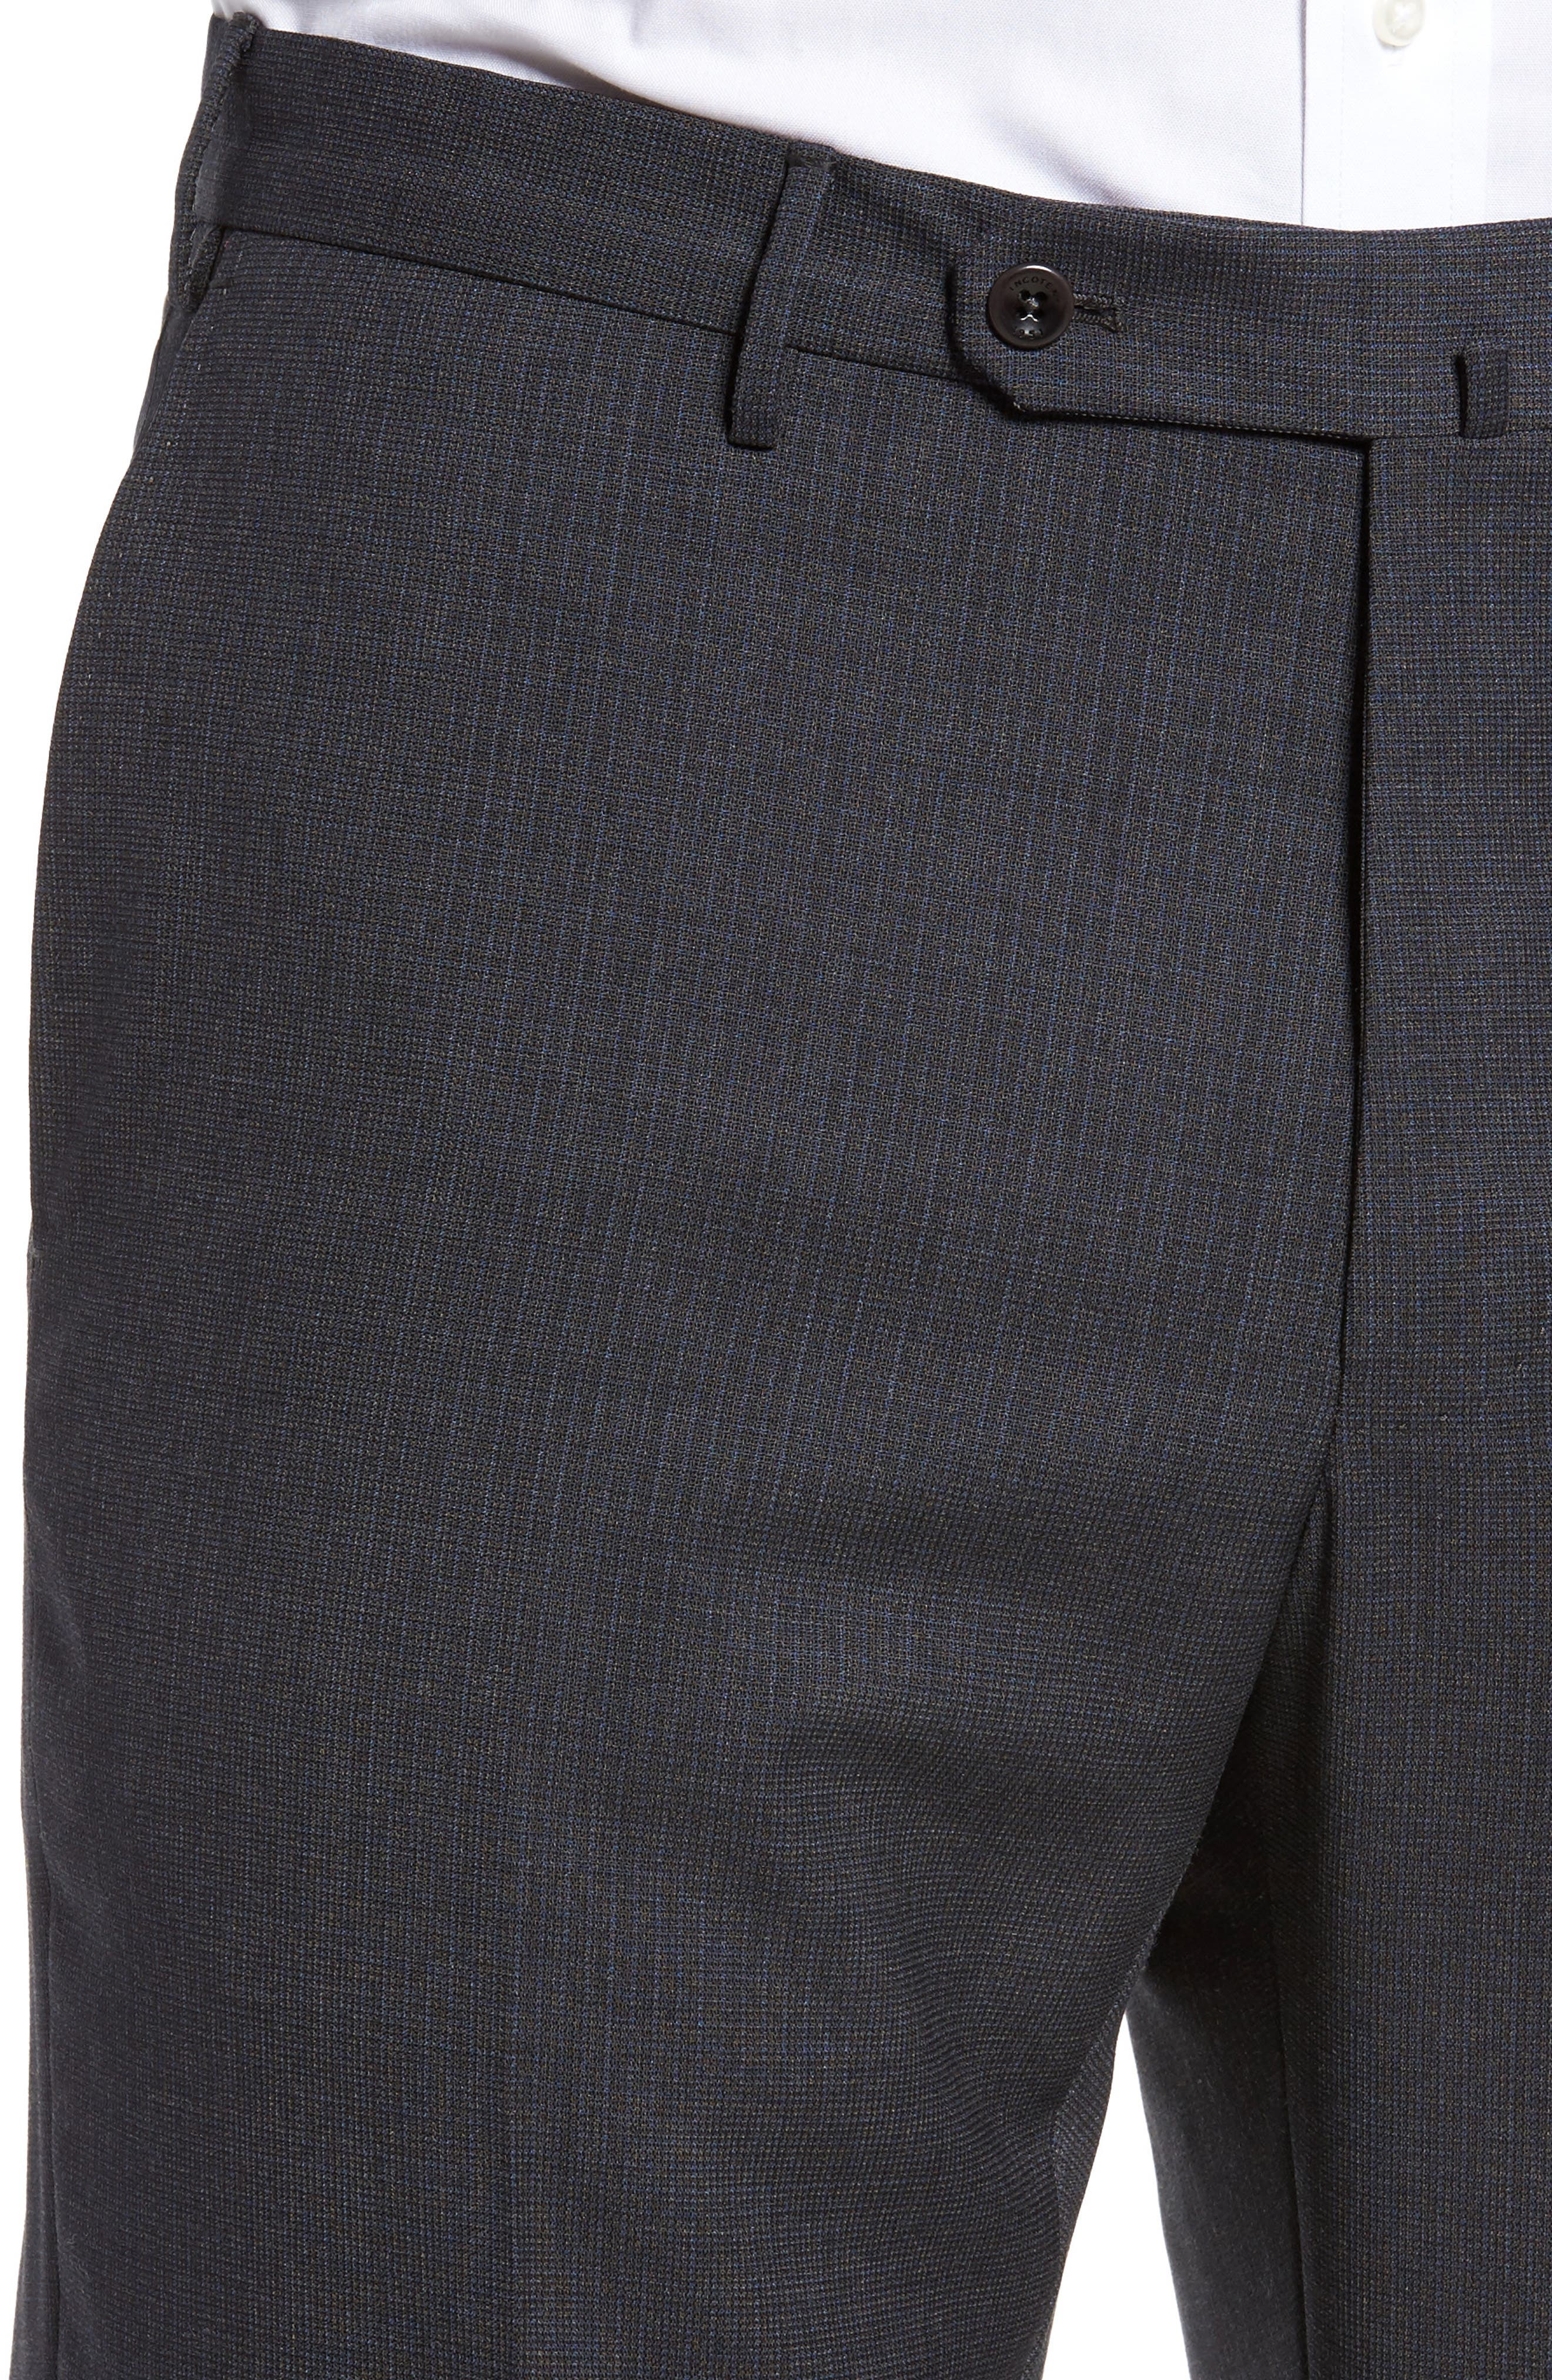 Benson Flat Front Wool Trousers,                             Alternate thumbnail 5, color,                             015